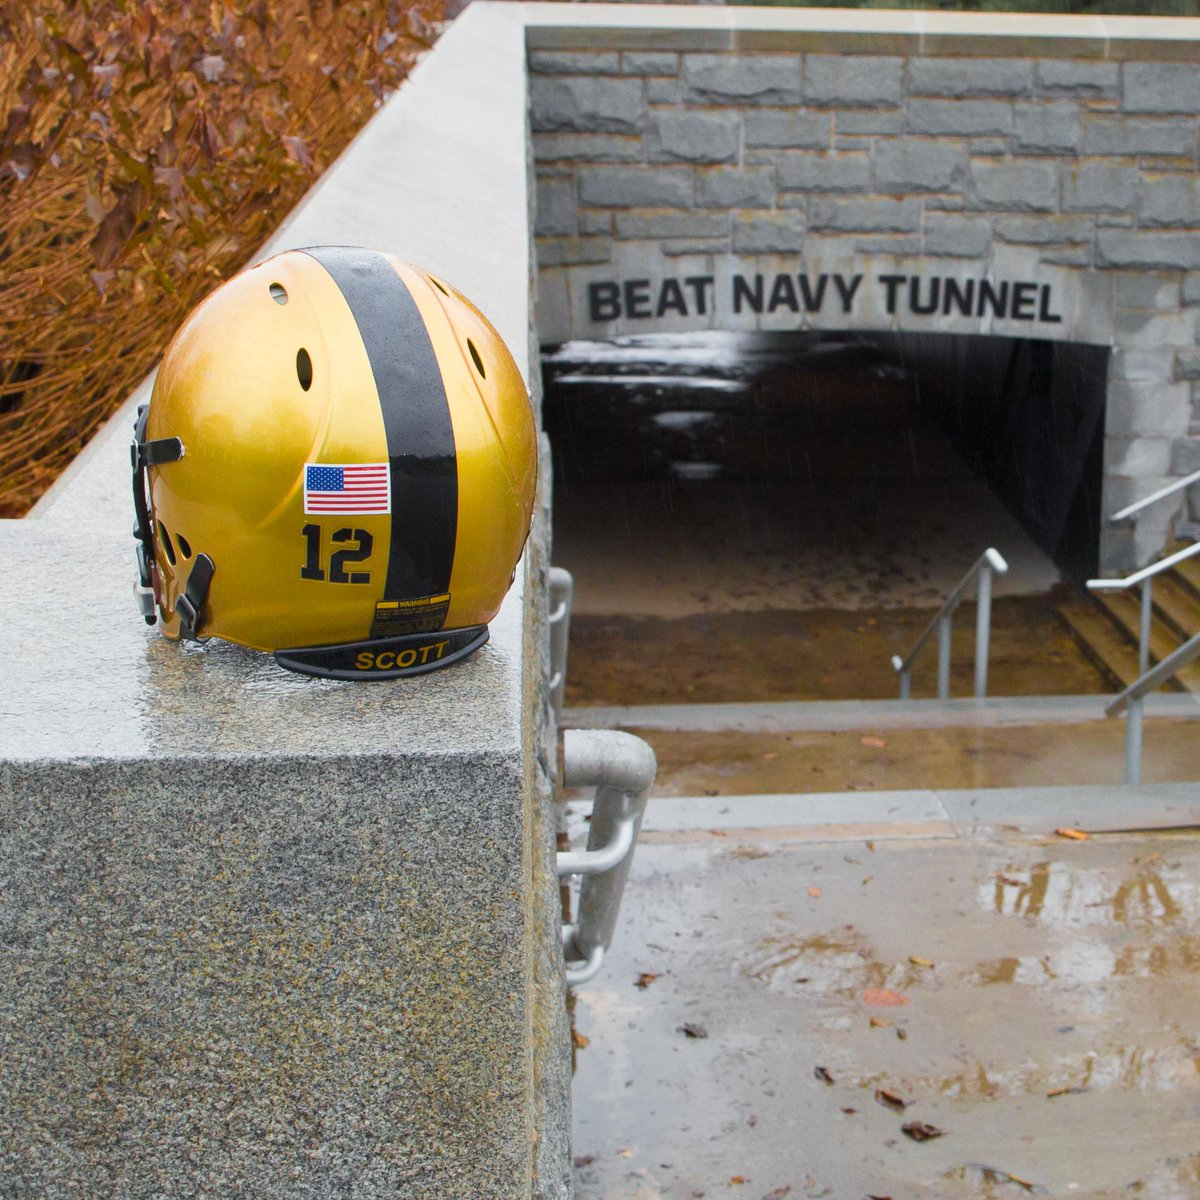 For every Soldier to ever wear the uniform, today boils down to one thing #BeatNavy! #ArmyStrong @ArmyEquip http://t.co/VjI231KaPX